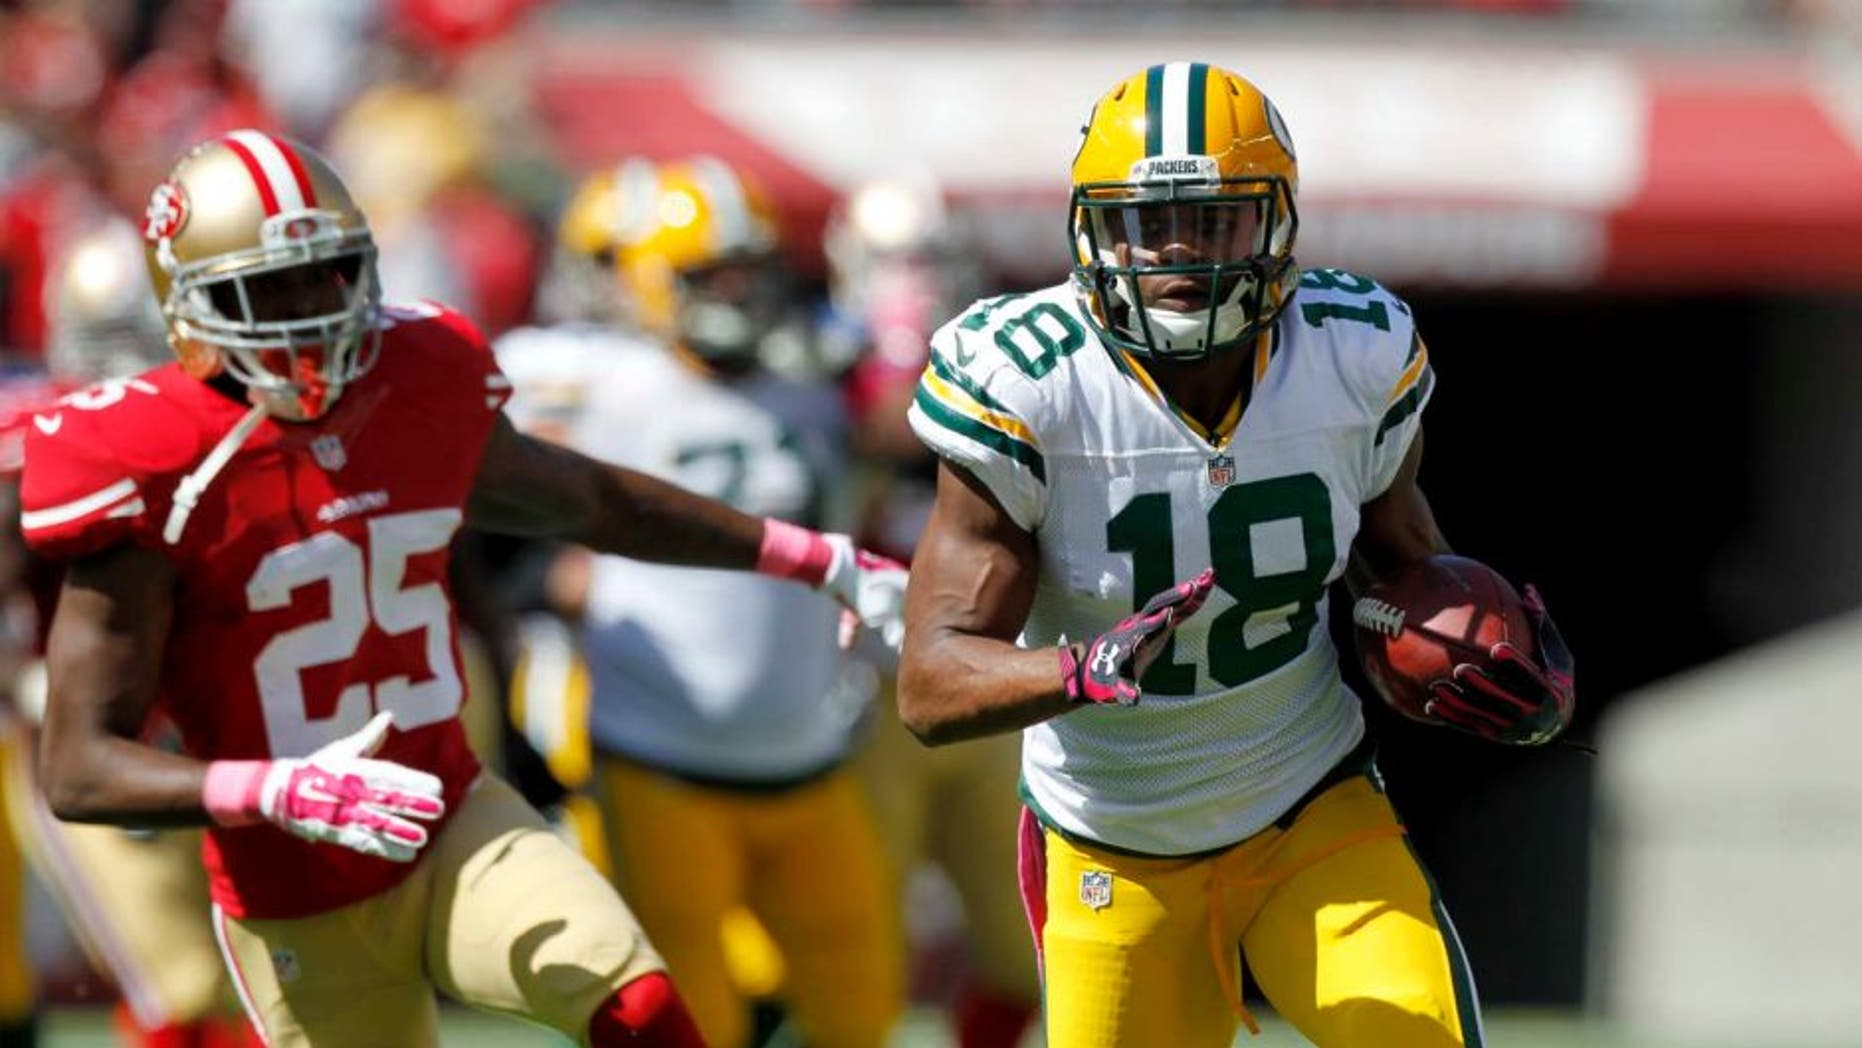 Green Bay Packers wide receiver Randall Cobb runs with the ball after making a catch against the San Francisco 49ers in the first quarter at Levi's Stadium in Santa Clara, Calif., on Sunday, Oct. 4, 2015.